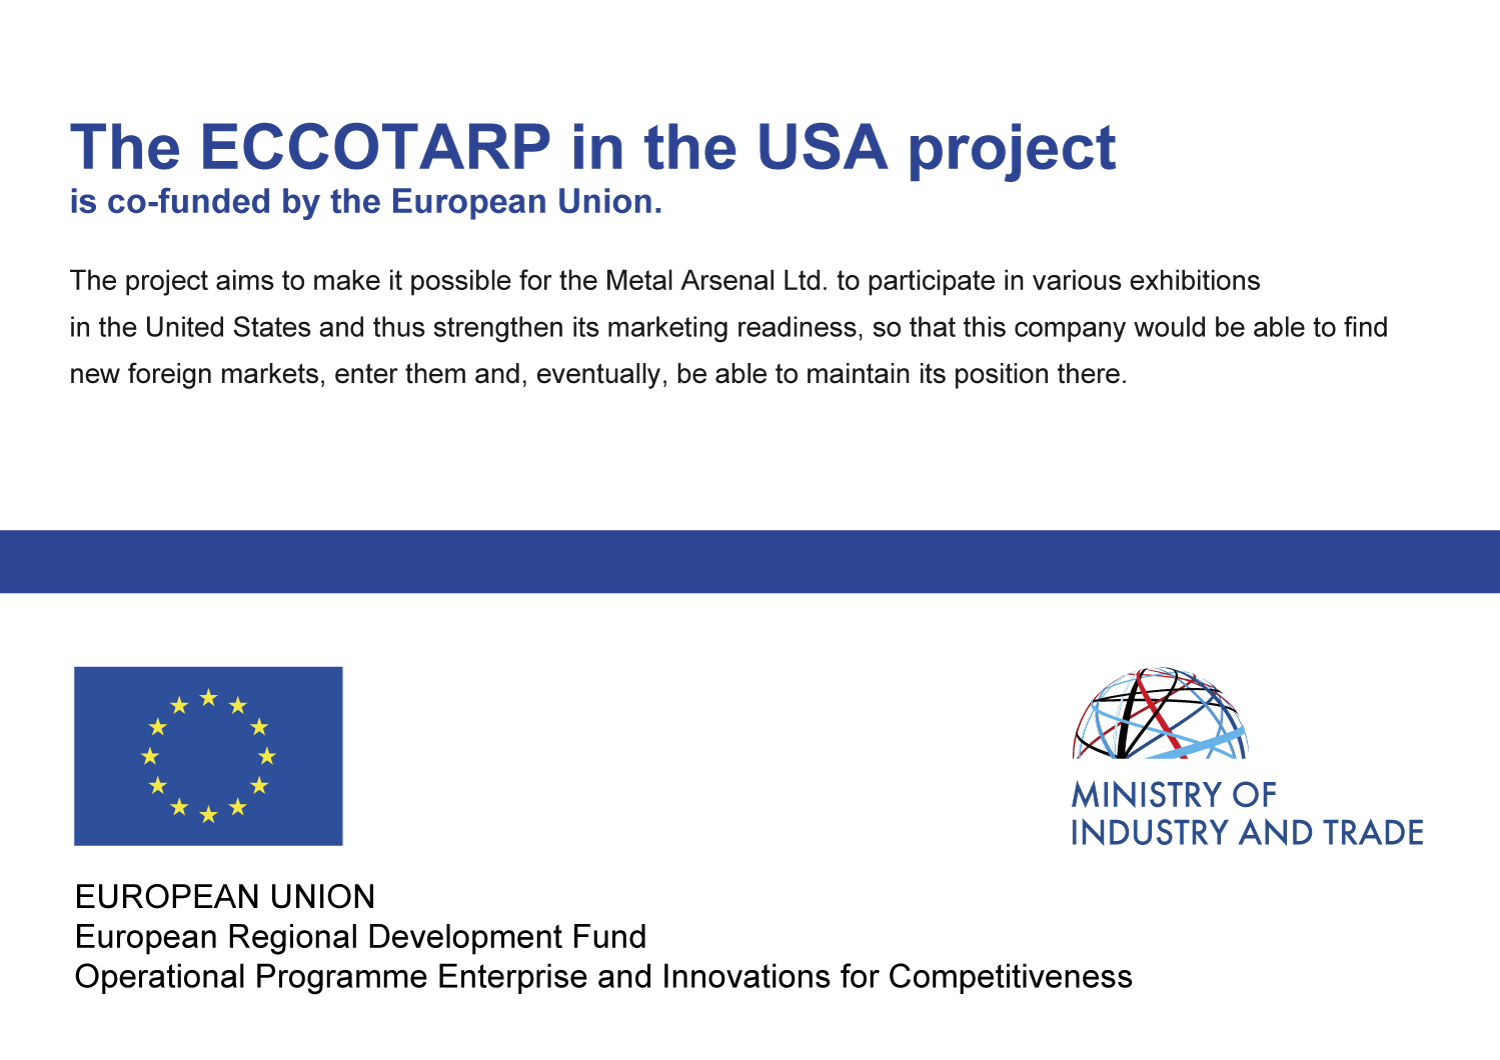 ECCOTARP in the USA is co-funded by the European Union